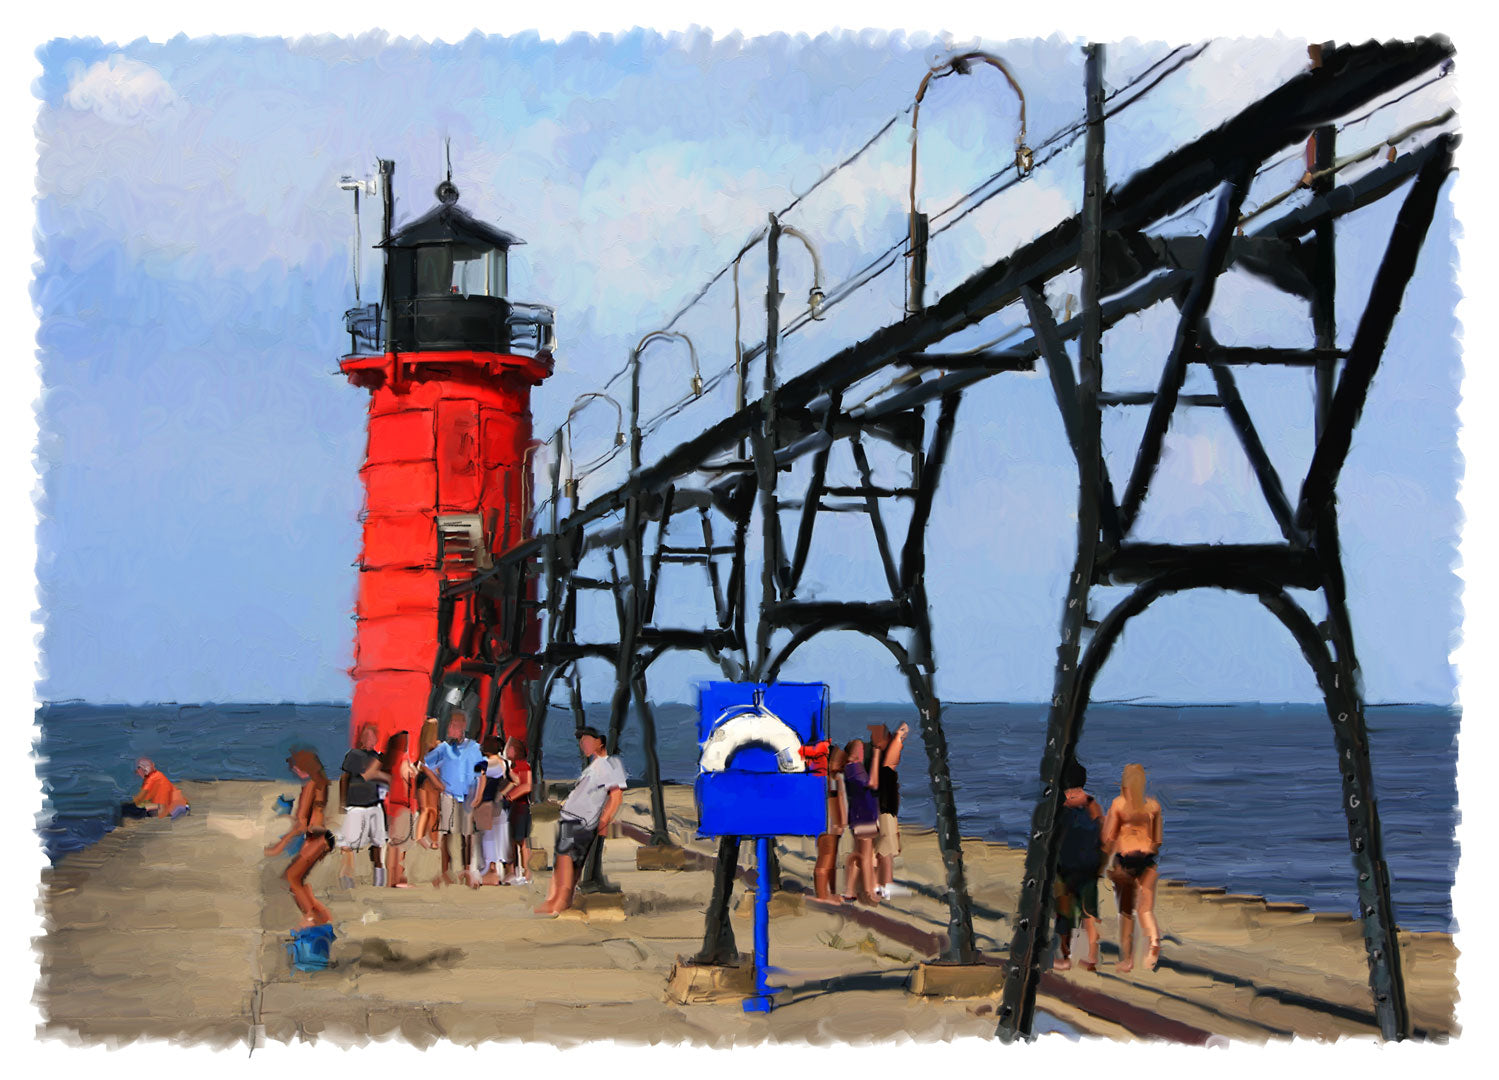 08 - South Haven Lighthouse